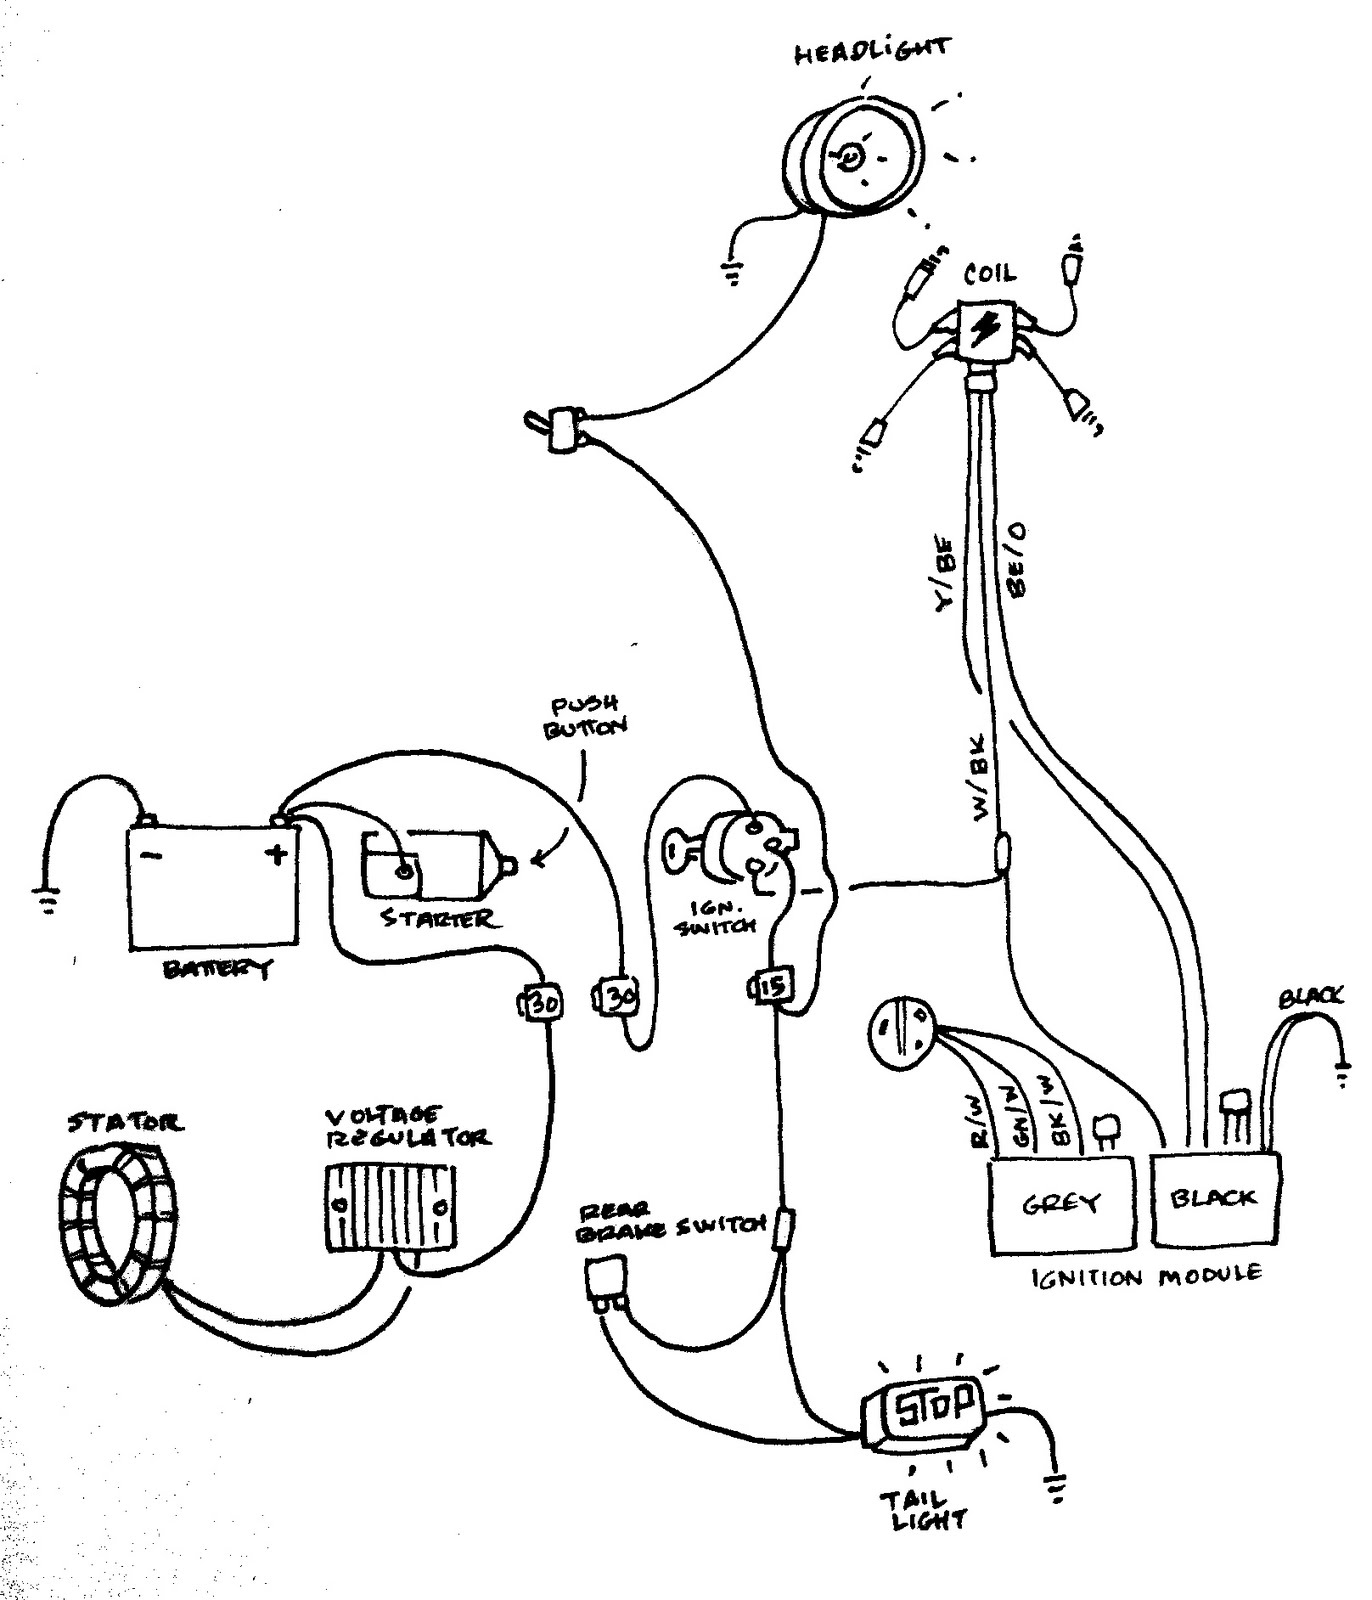 Fantastic triumph bobber wiring diagram images electrical and